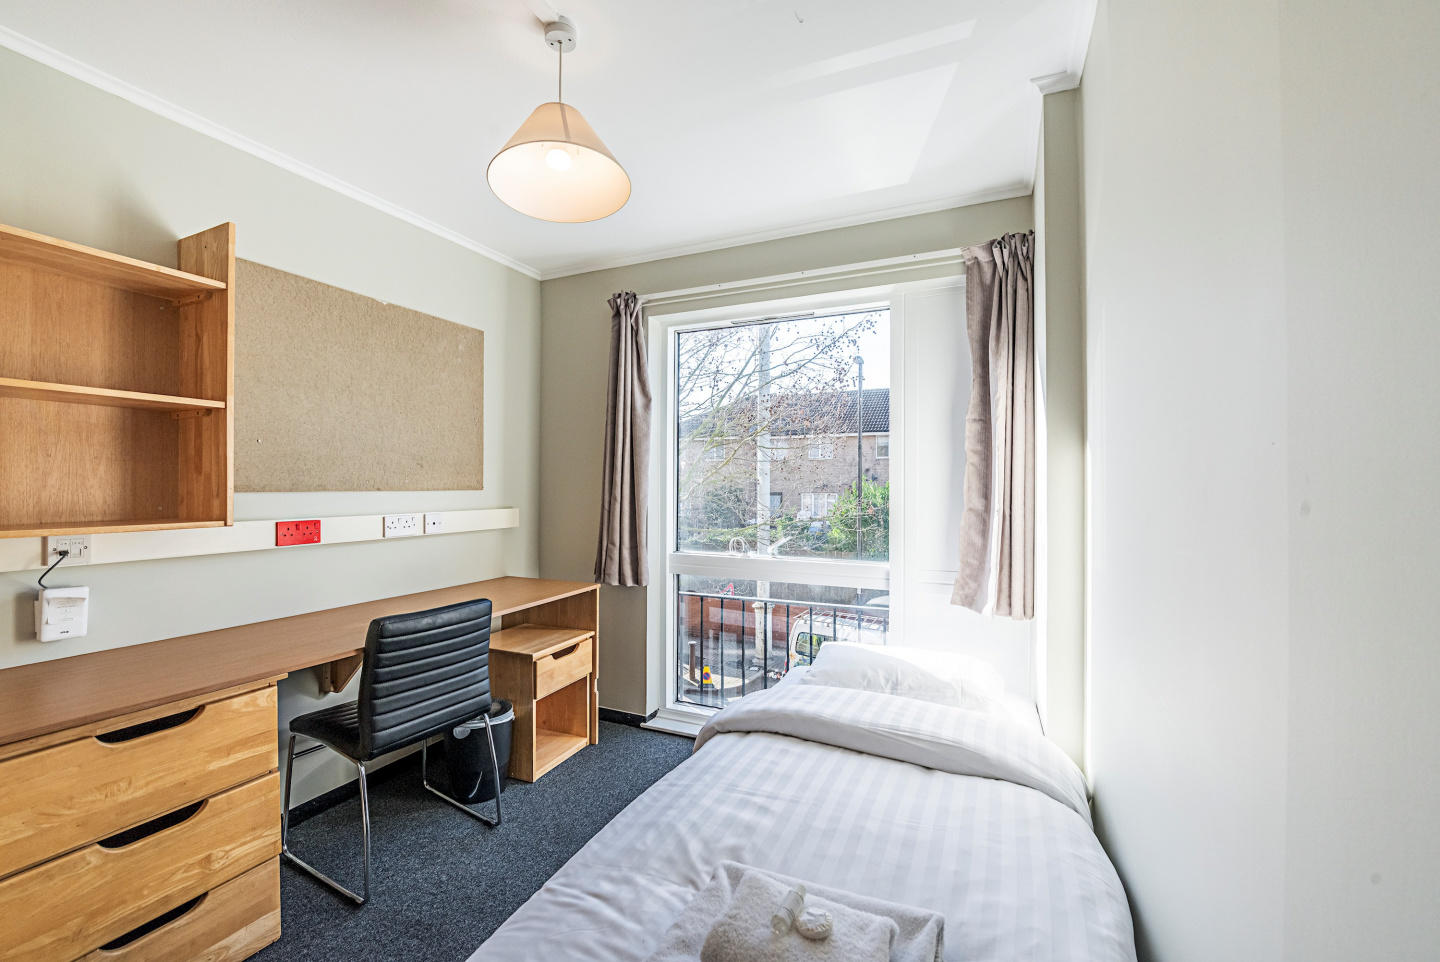 321 d · Single Room In New Cross Gate Slide-3